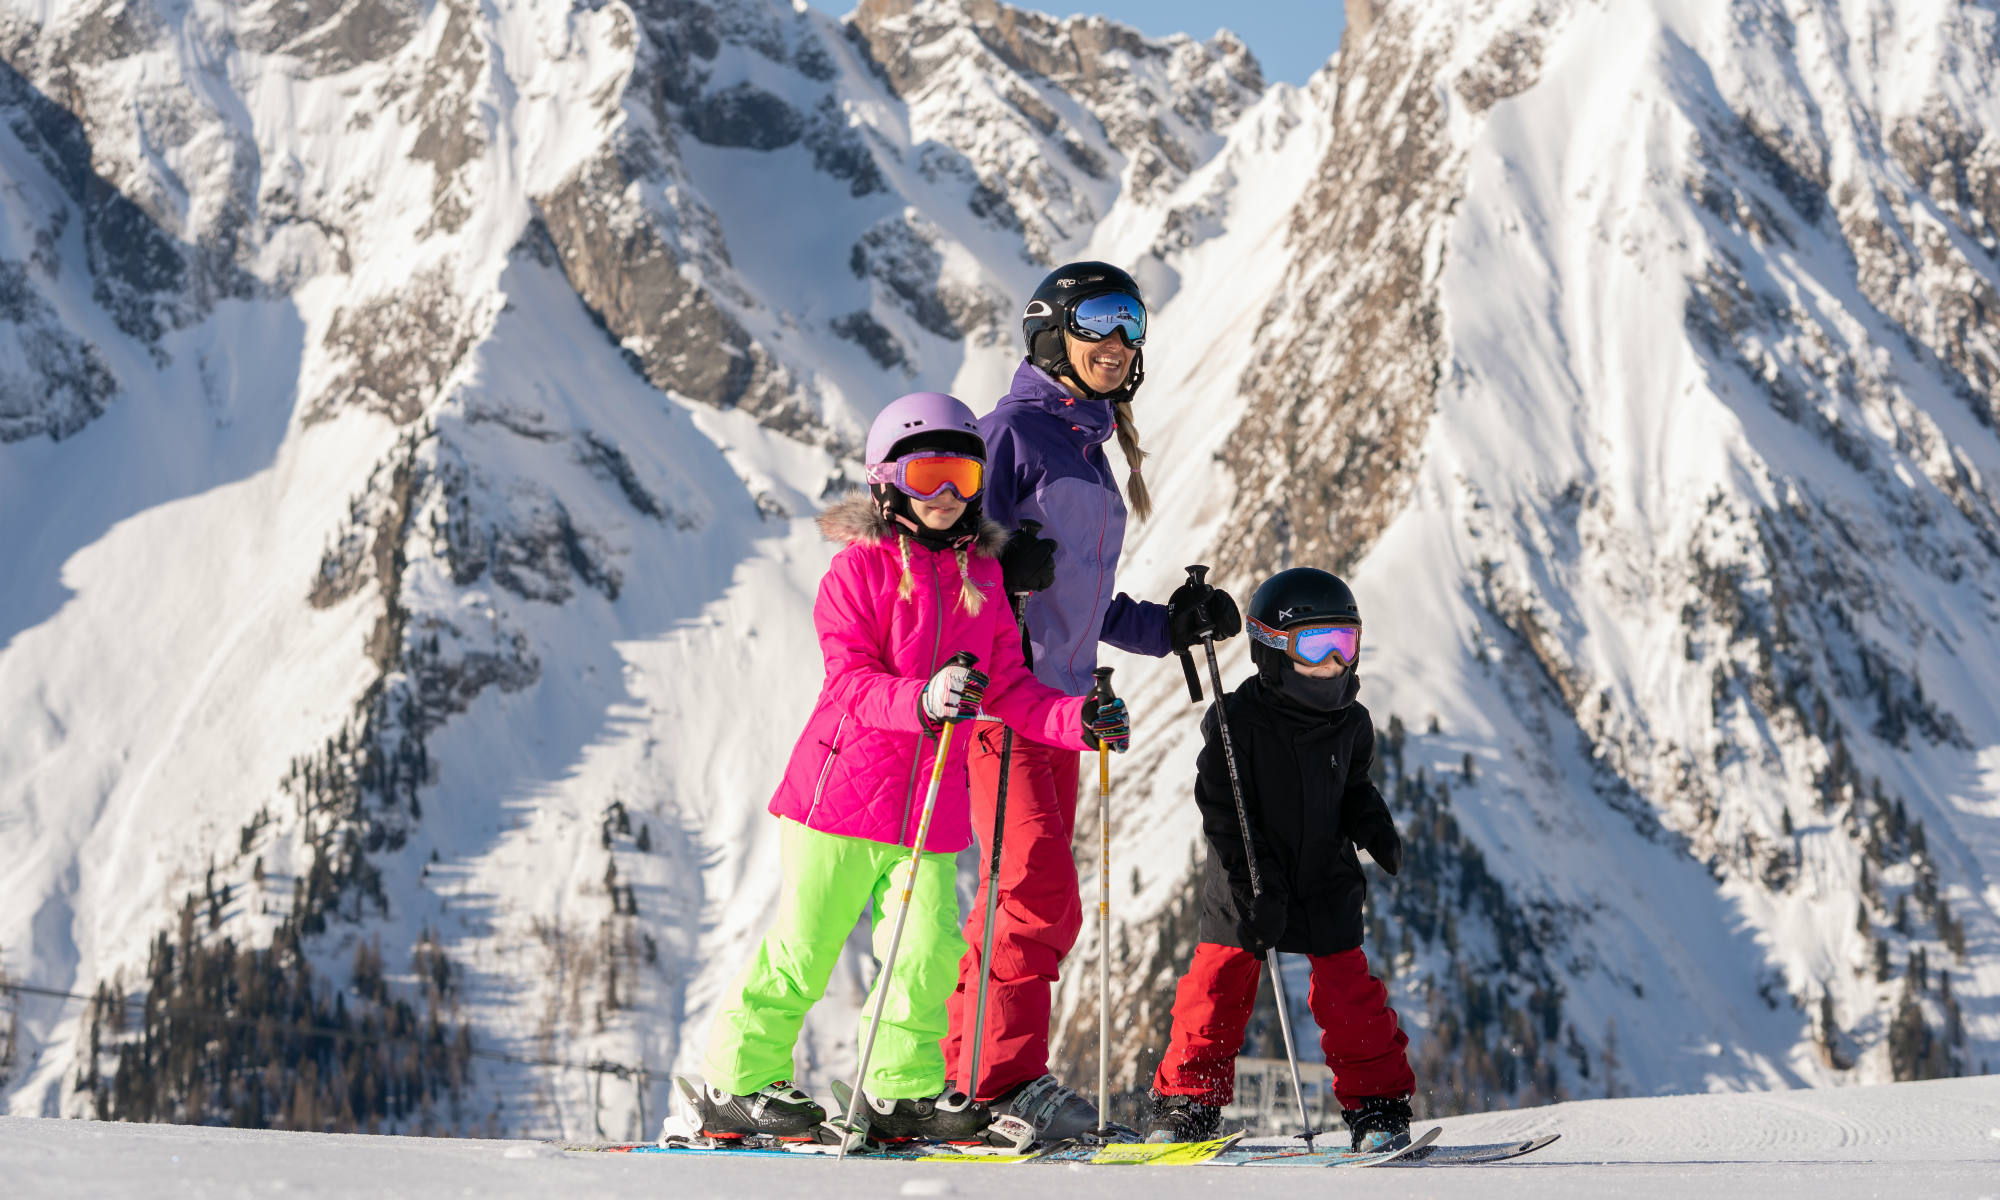 A mother with her 2 small children on a snowy piste.